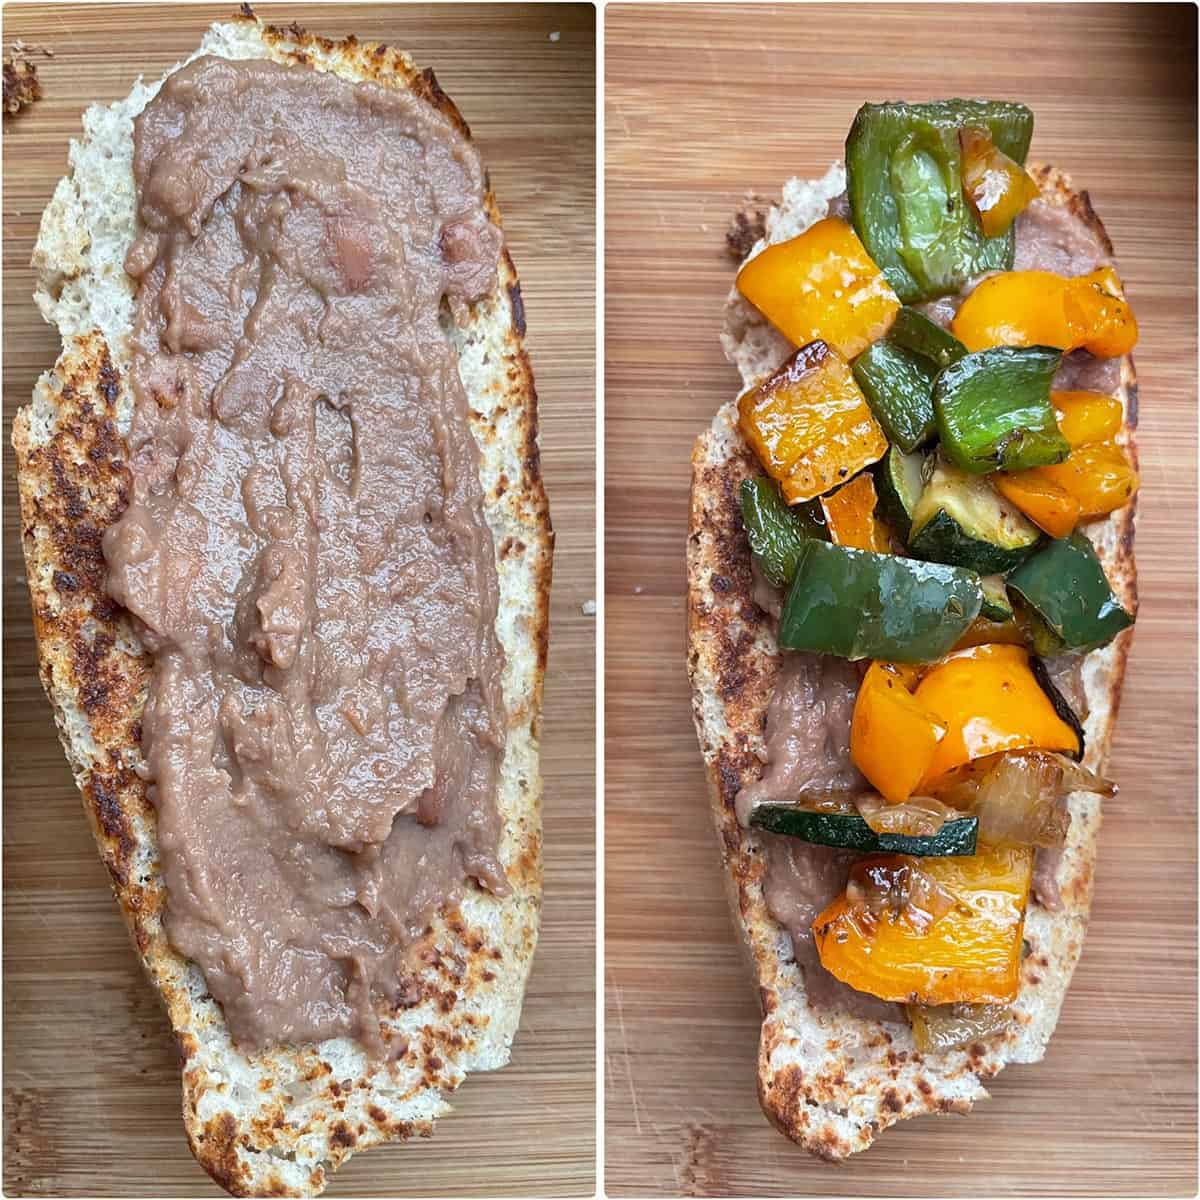 Bread Roll topped with refried beans and cooked vegetables